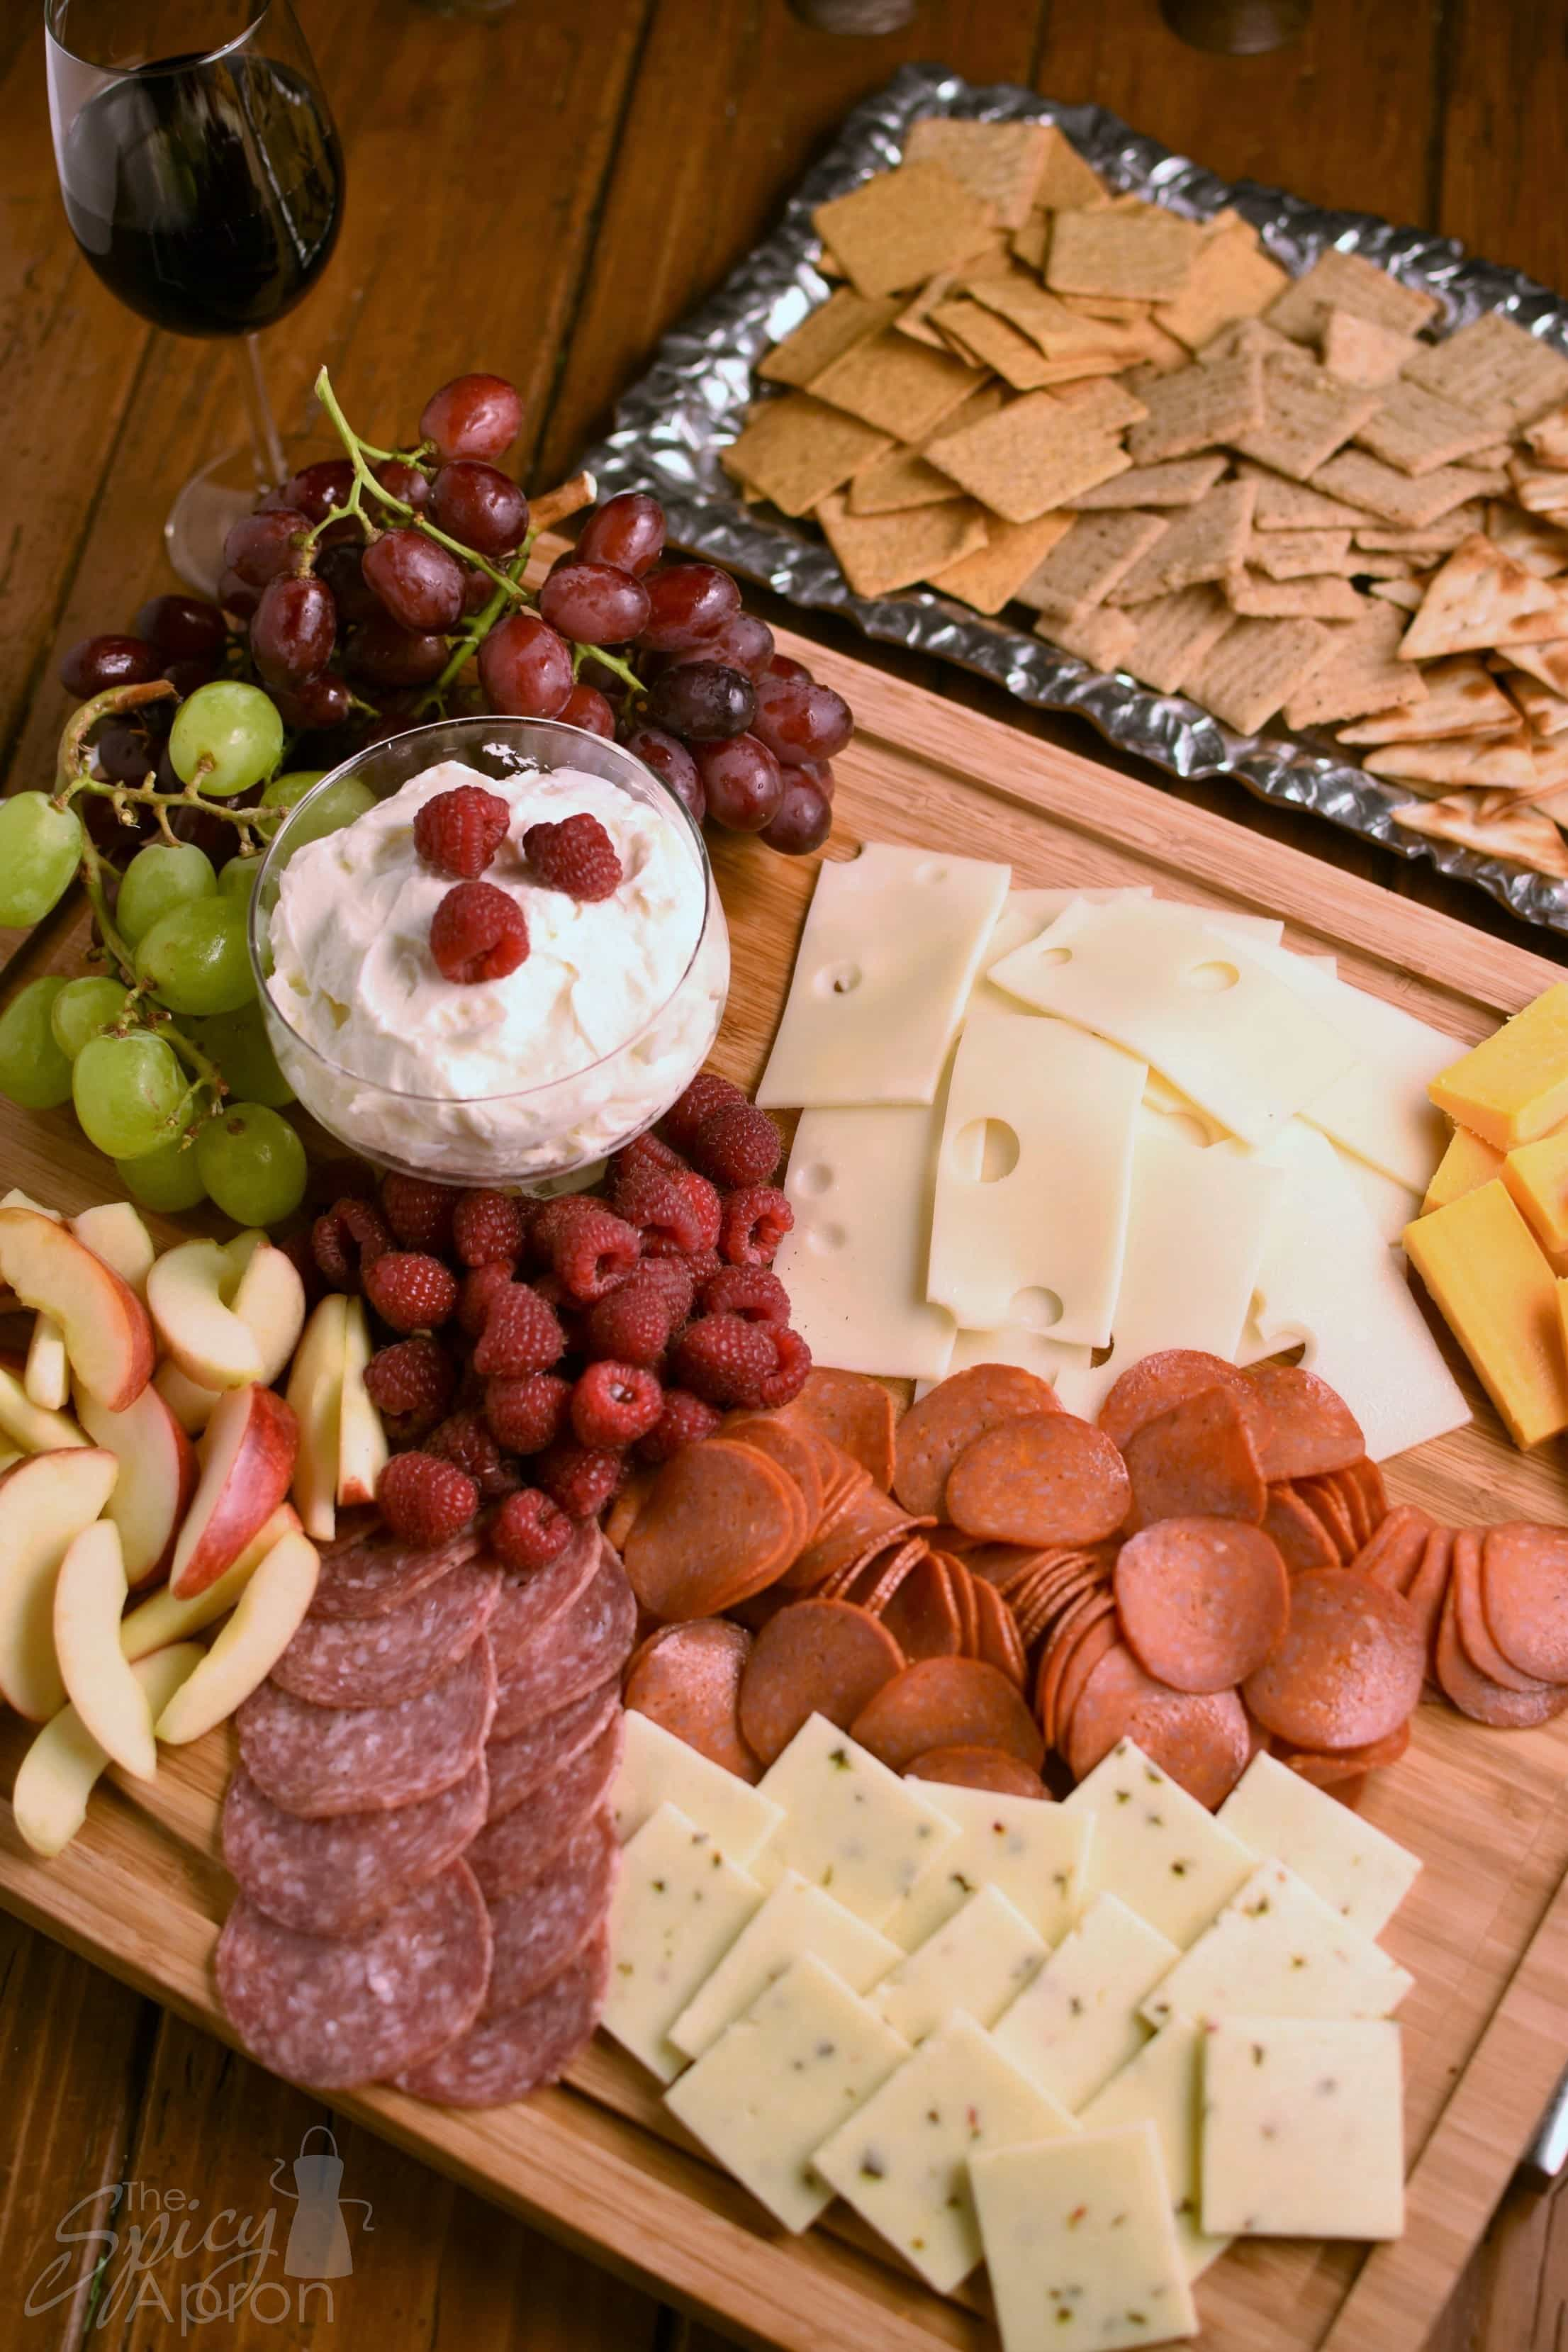 Meat and Cheese Platter & Meat and Cheese Platter with Fruit (and dip) - The Spicy Apron